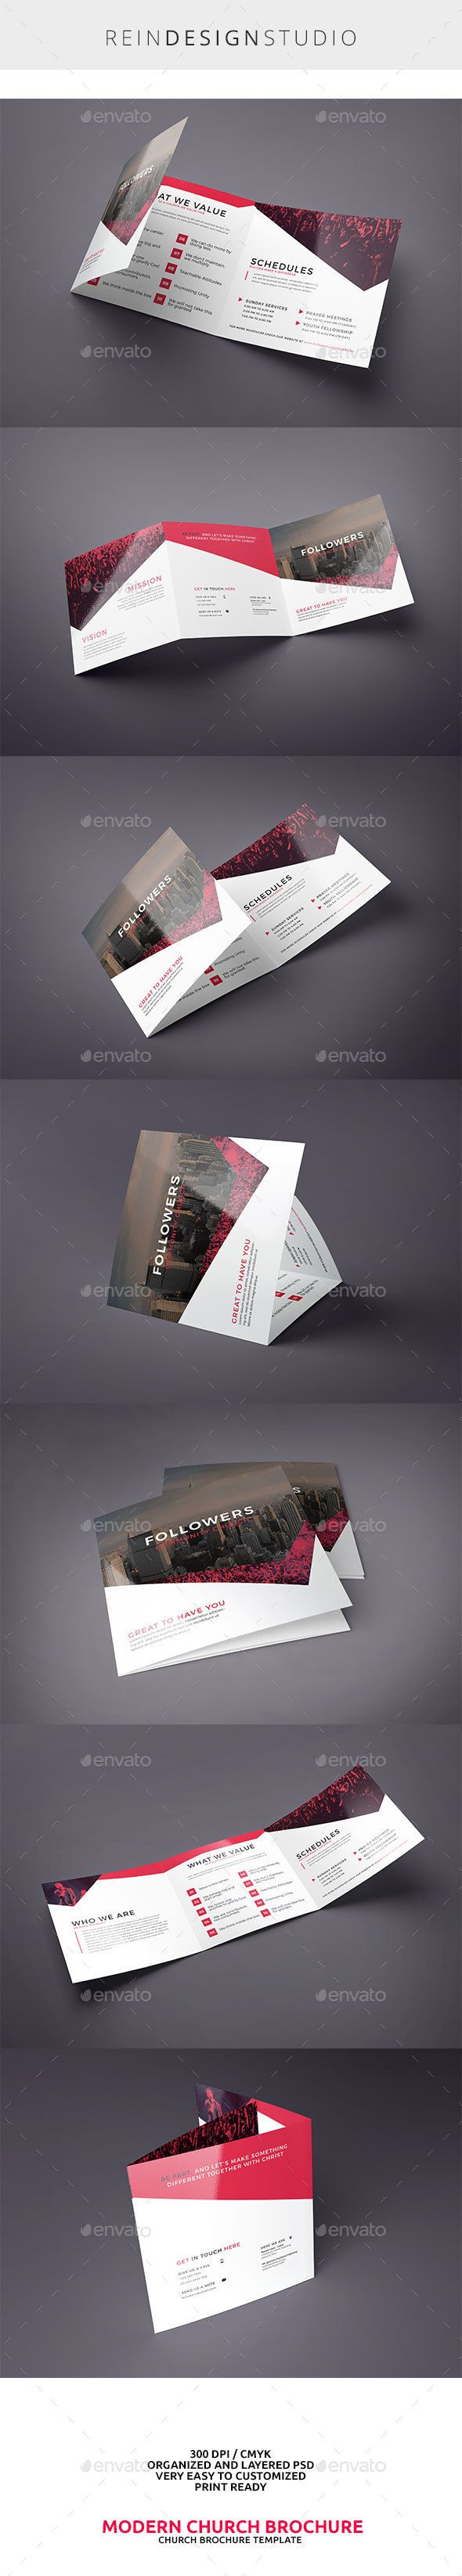 Modern Church Square Trifold Template PSD. Download here: http://graphicriver.net/item/modern-church-square-trifold/15186040?ref=ksioks